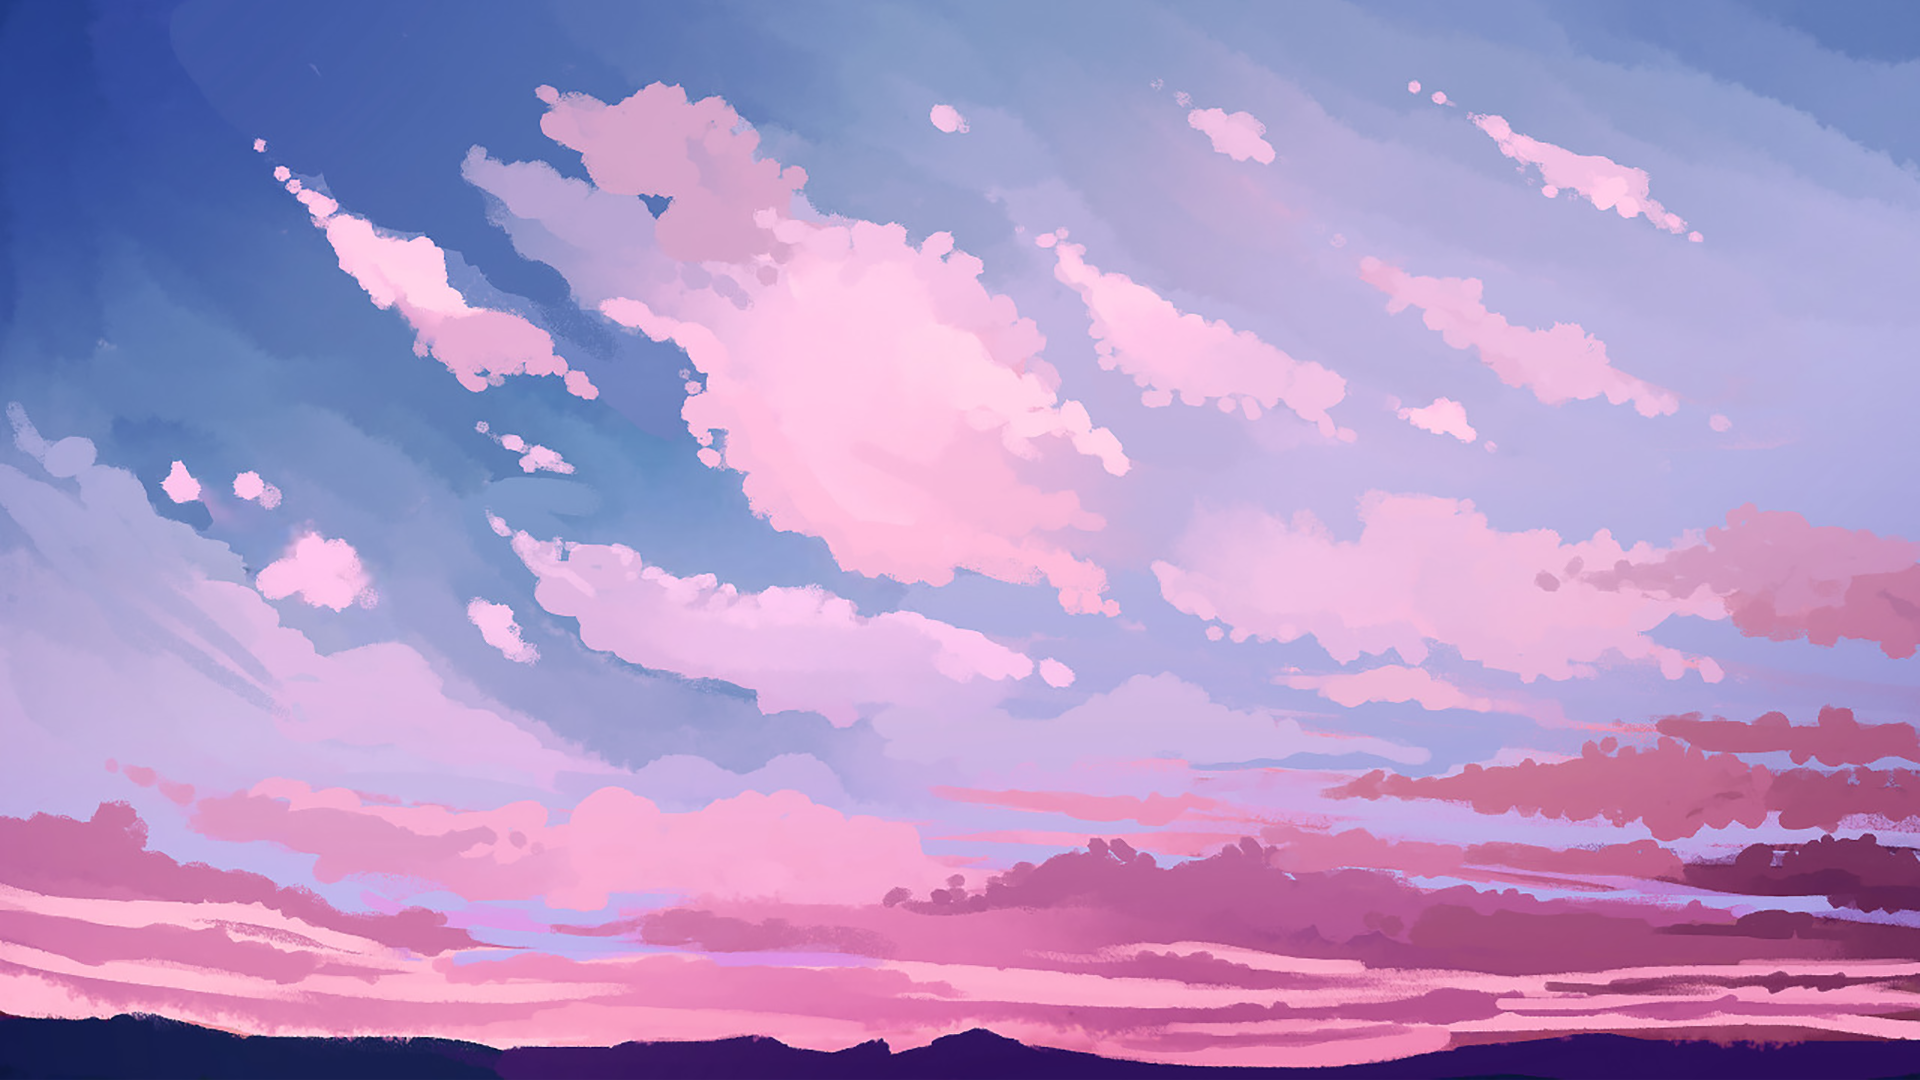 Pink Skies 1920x1080 Desktop Wallpaper Art Aesthetic Desktop Wallpaper Anime Scenery Wallpaper